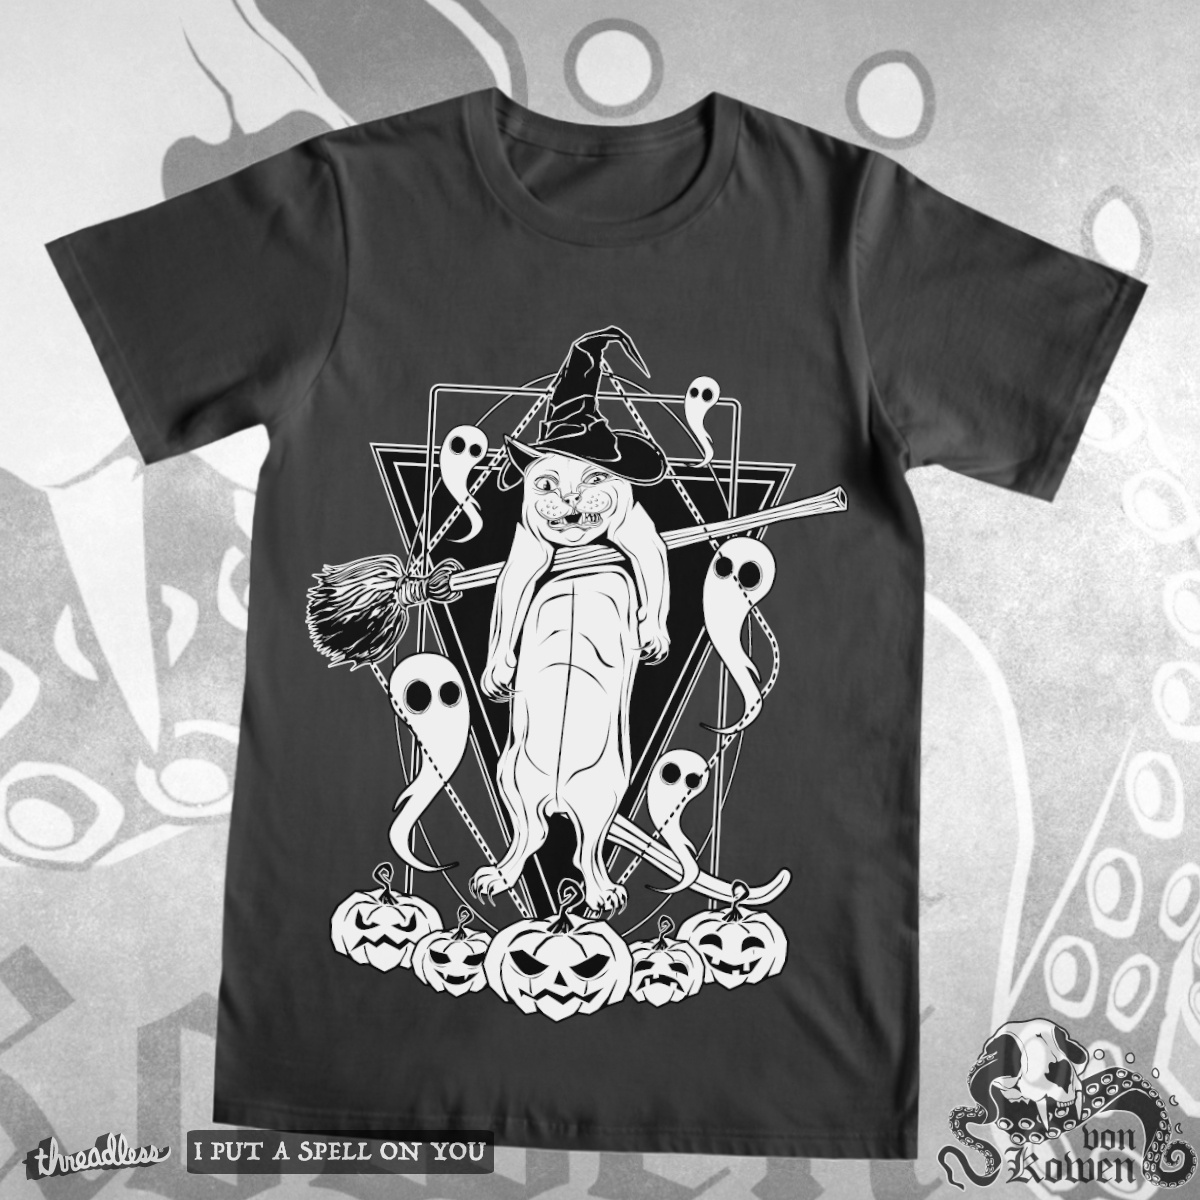 Witches cat, a cool t-shirt design